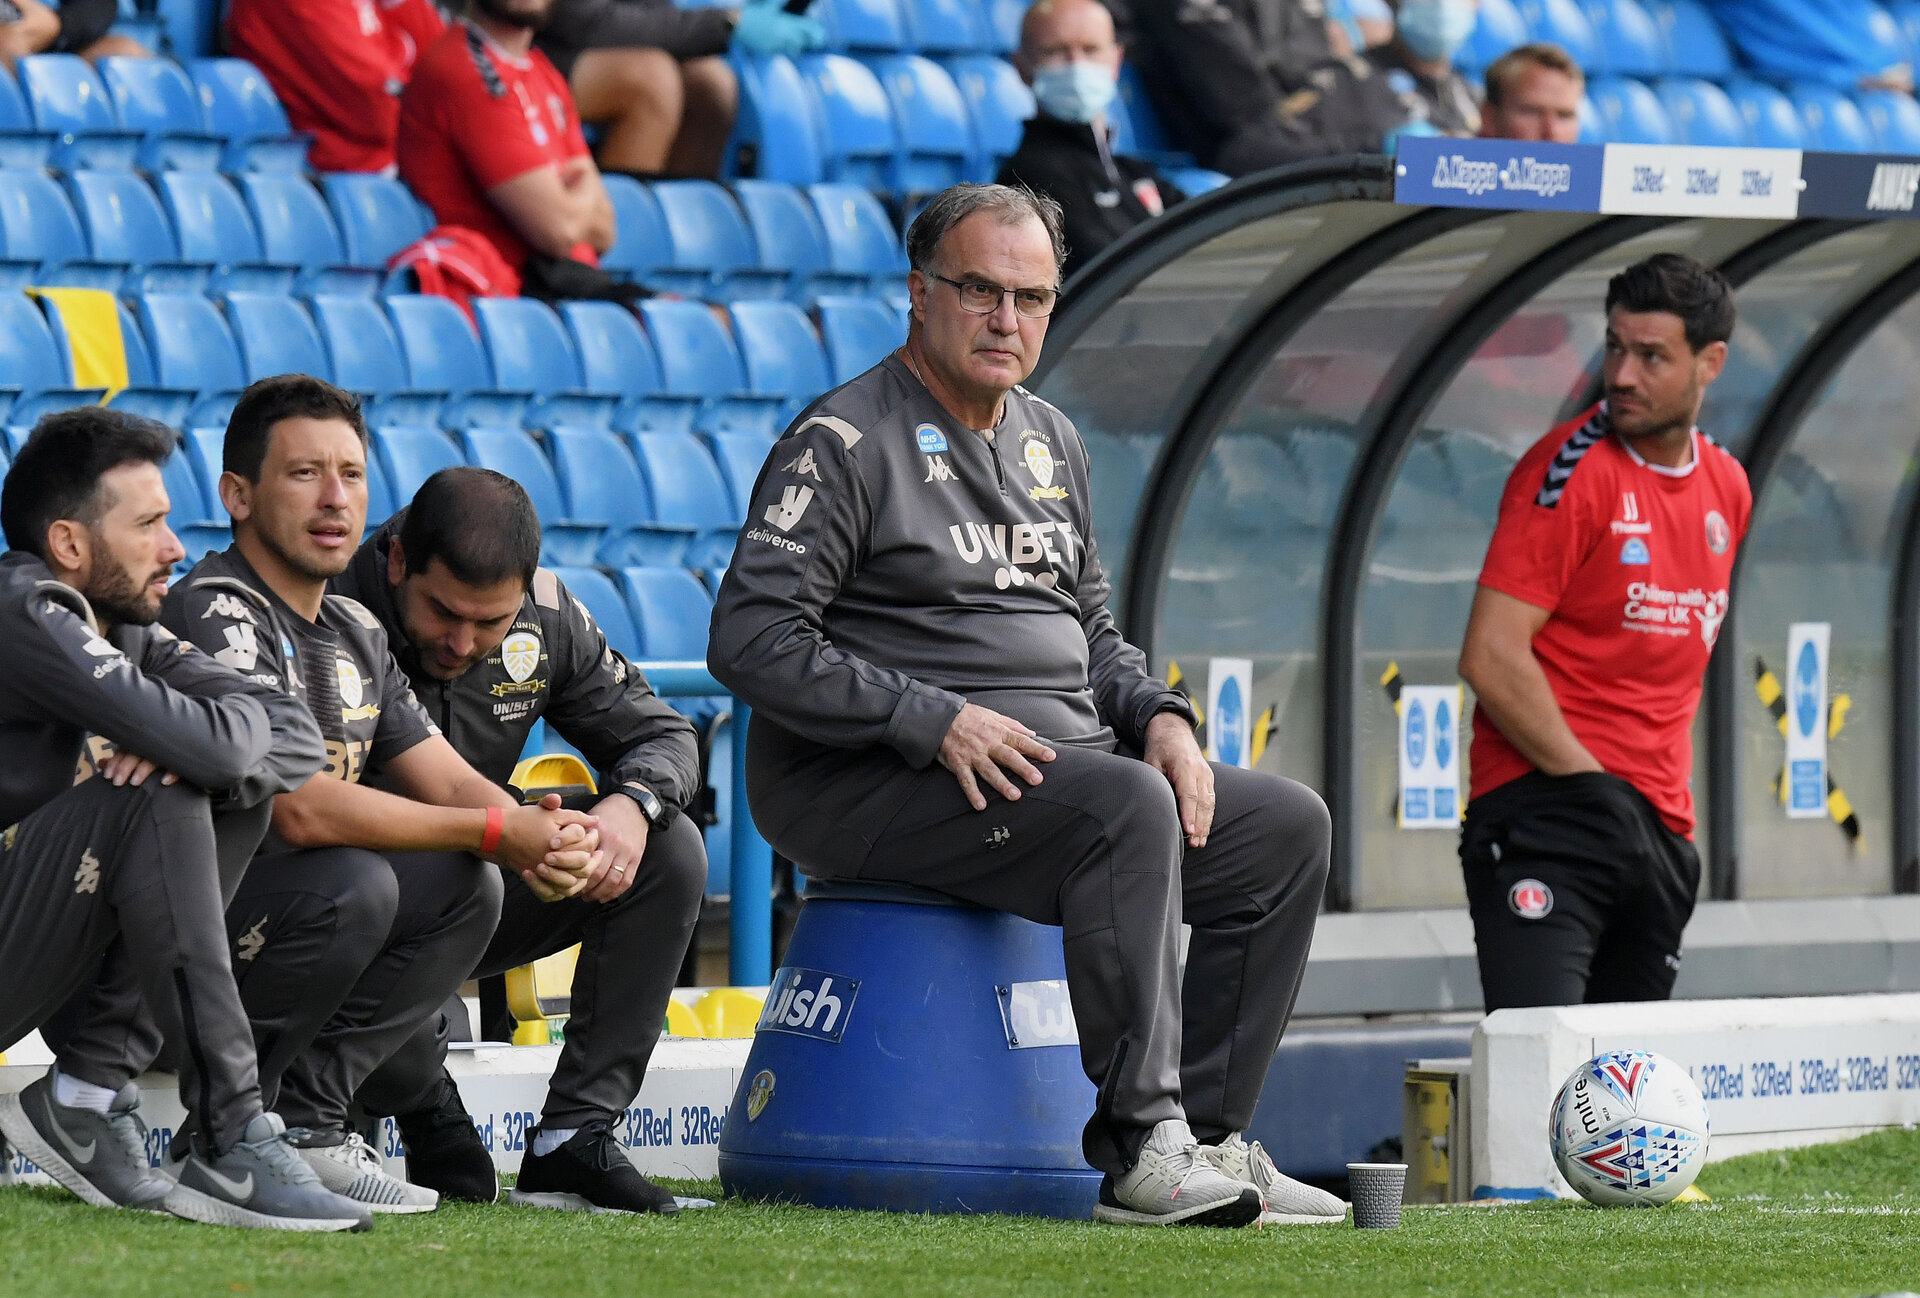 LEEDS, ENGLAND - JULY 22: Marcelo Bielsa, Manager of Leeds United watches the play during the Sky Bet Championship match between Leeds United and Charlton Athletic at Elland Road on July 22, 2020 in Leeds, England. Football Stadiums around Europe remain empty due to the Coronavirus Pandemic as Government social distancing laws prohibit fans inside venues resulting in all fixtures being played behind closed doors. (Photo by Michael Regan/Getty Images)